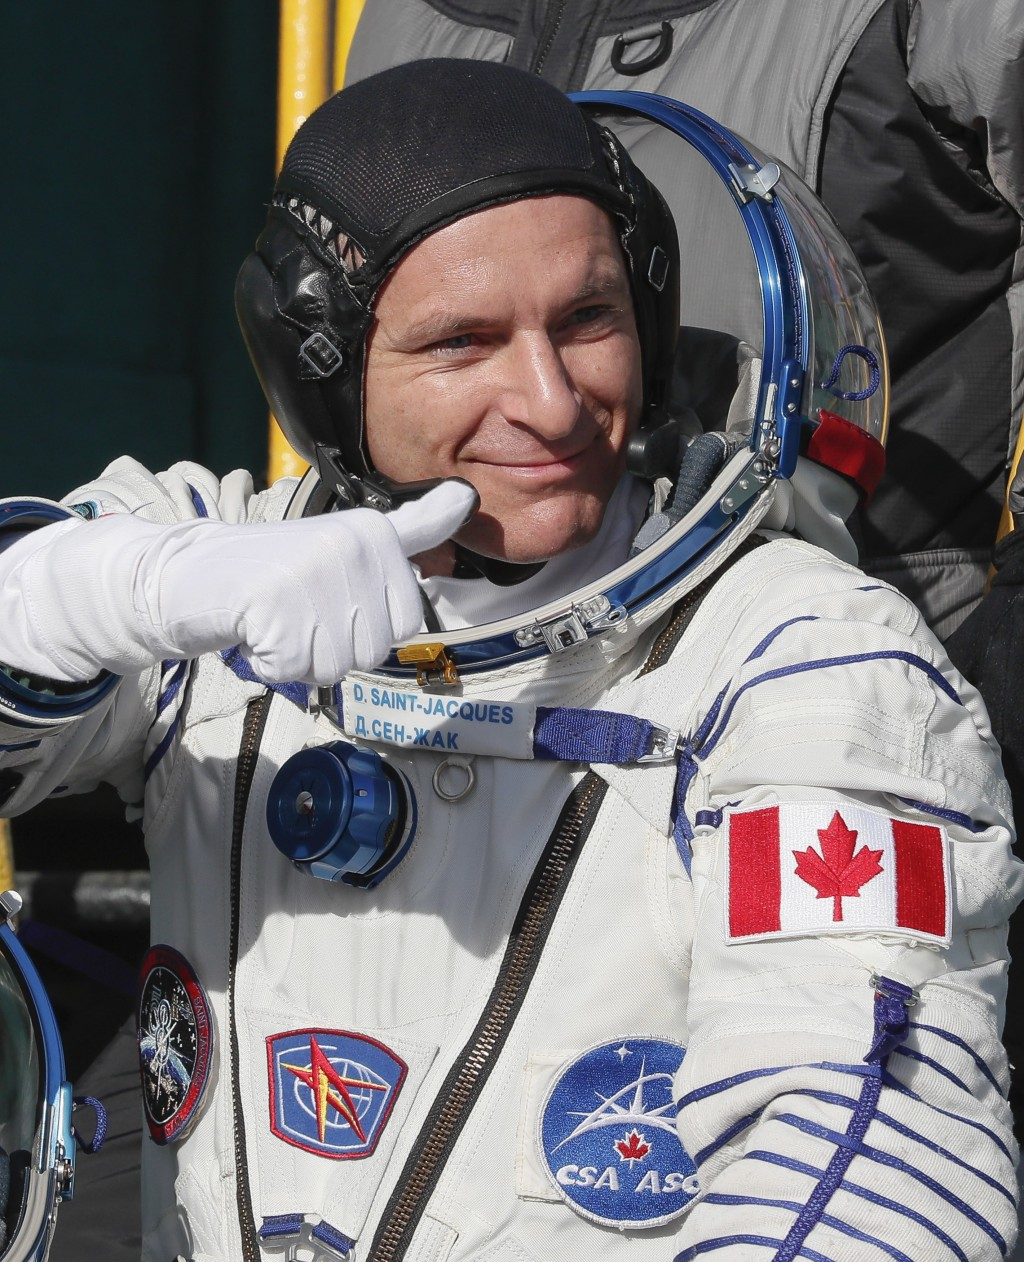 David Saint Jacques, crew member of the mission to the International Space Station, ISS, waves as he boards the rocket prior to the launch of Soyuz-FG...